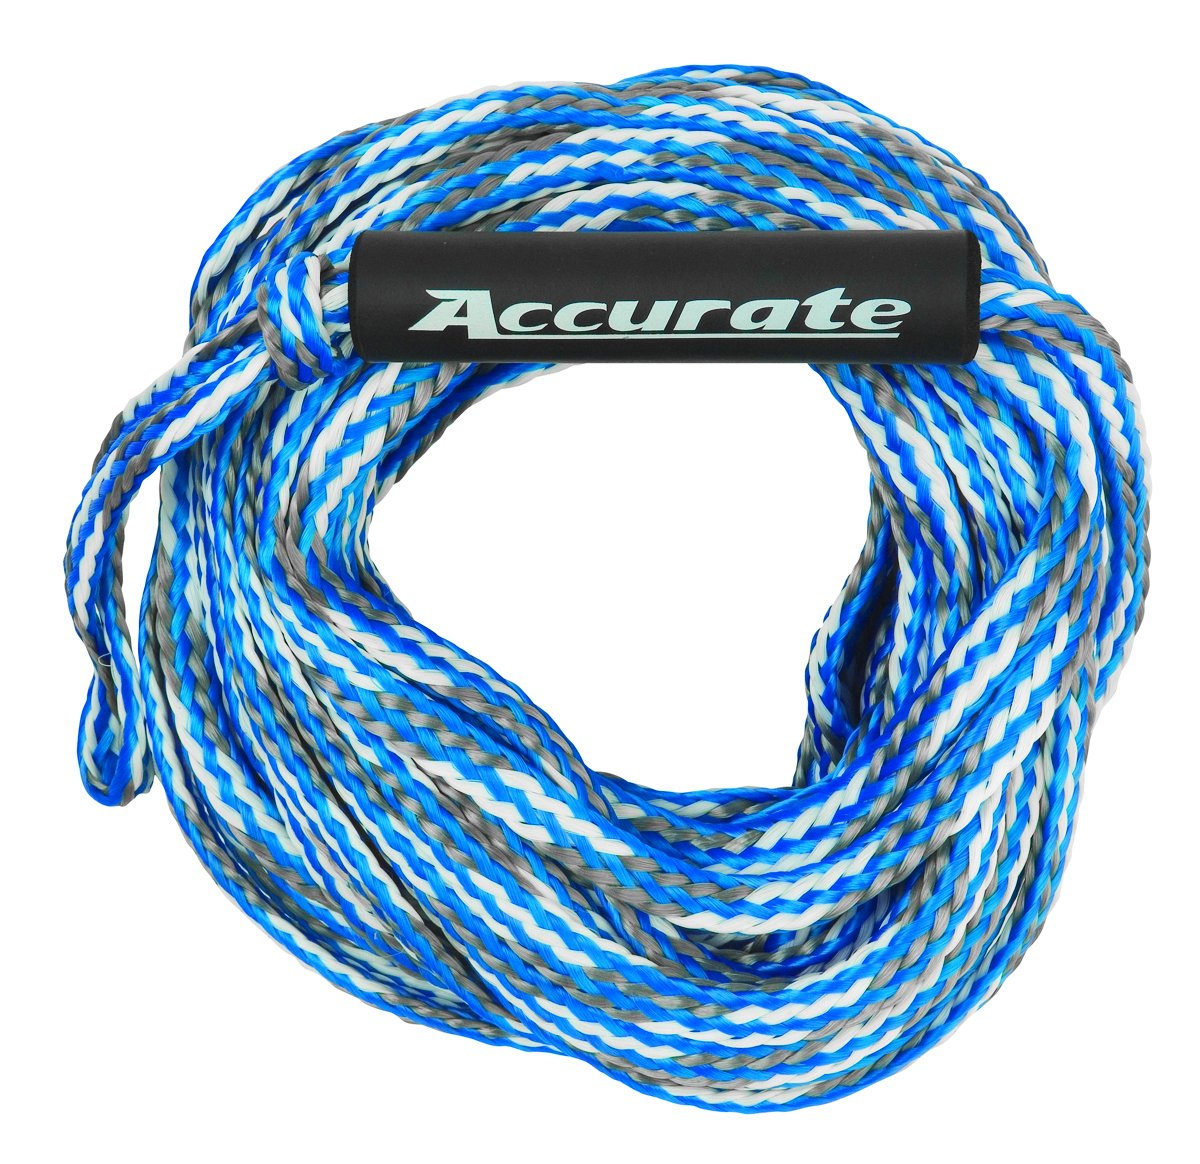 Accurate 2K 60' Tube Rope